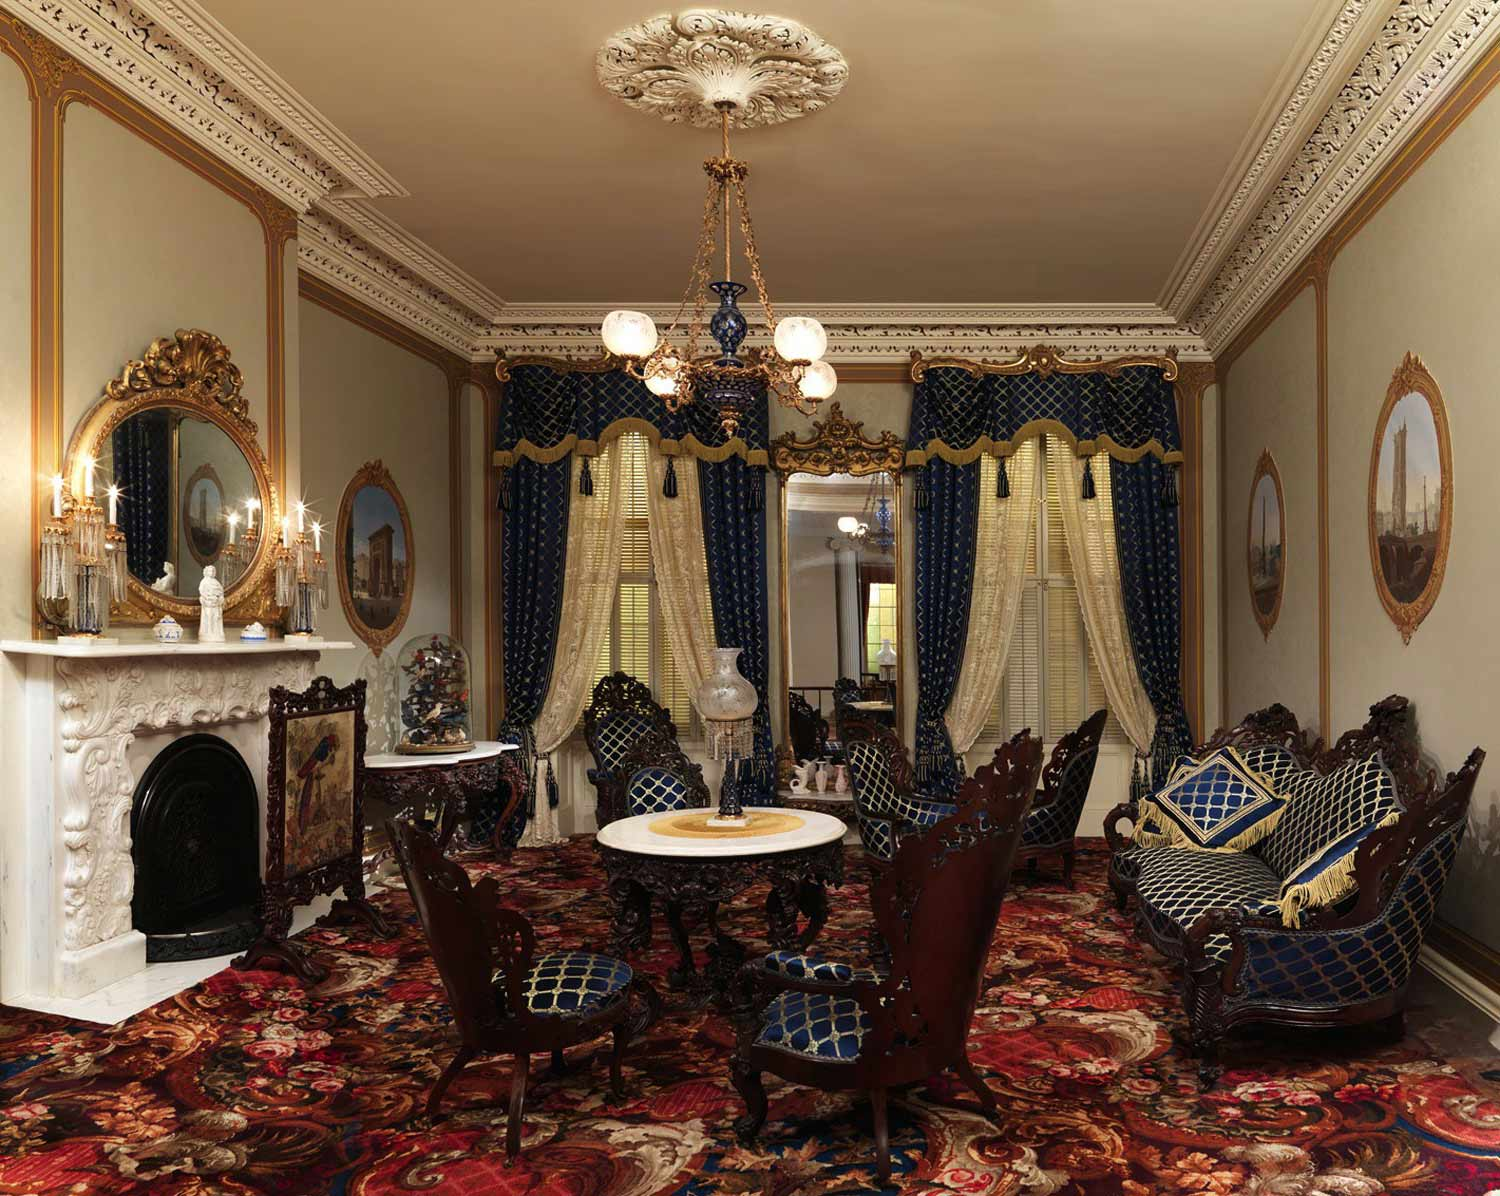 Renaissance Interior Design Style In The Living Room Full Of Historical Elements And Ambience